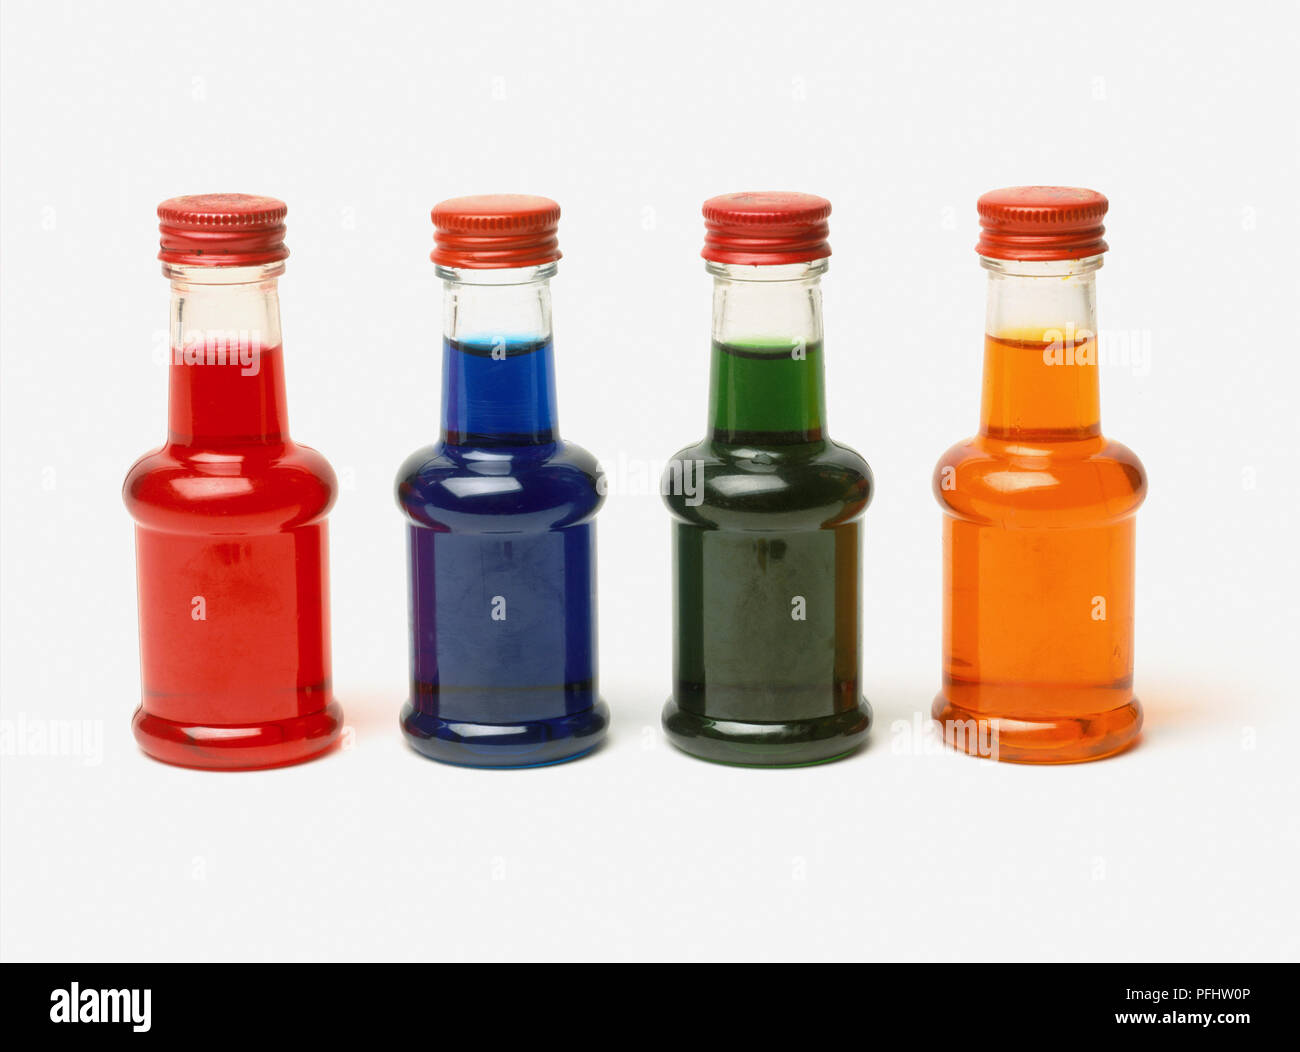 Bottles of red, blue, green and yellow food colouring, close ...